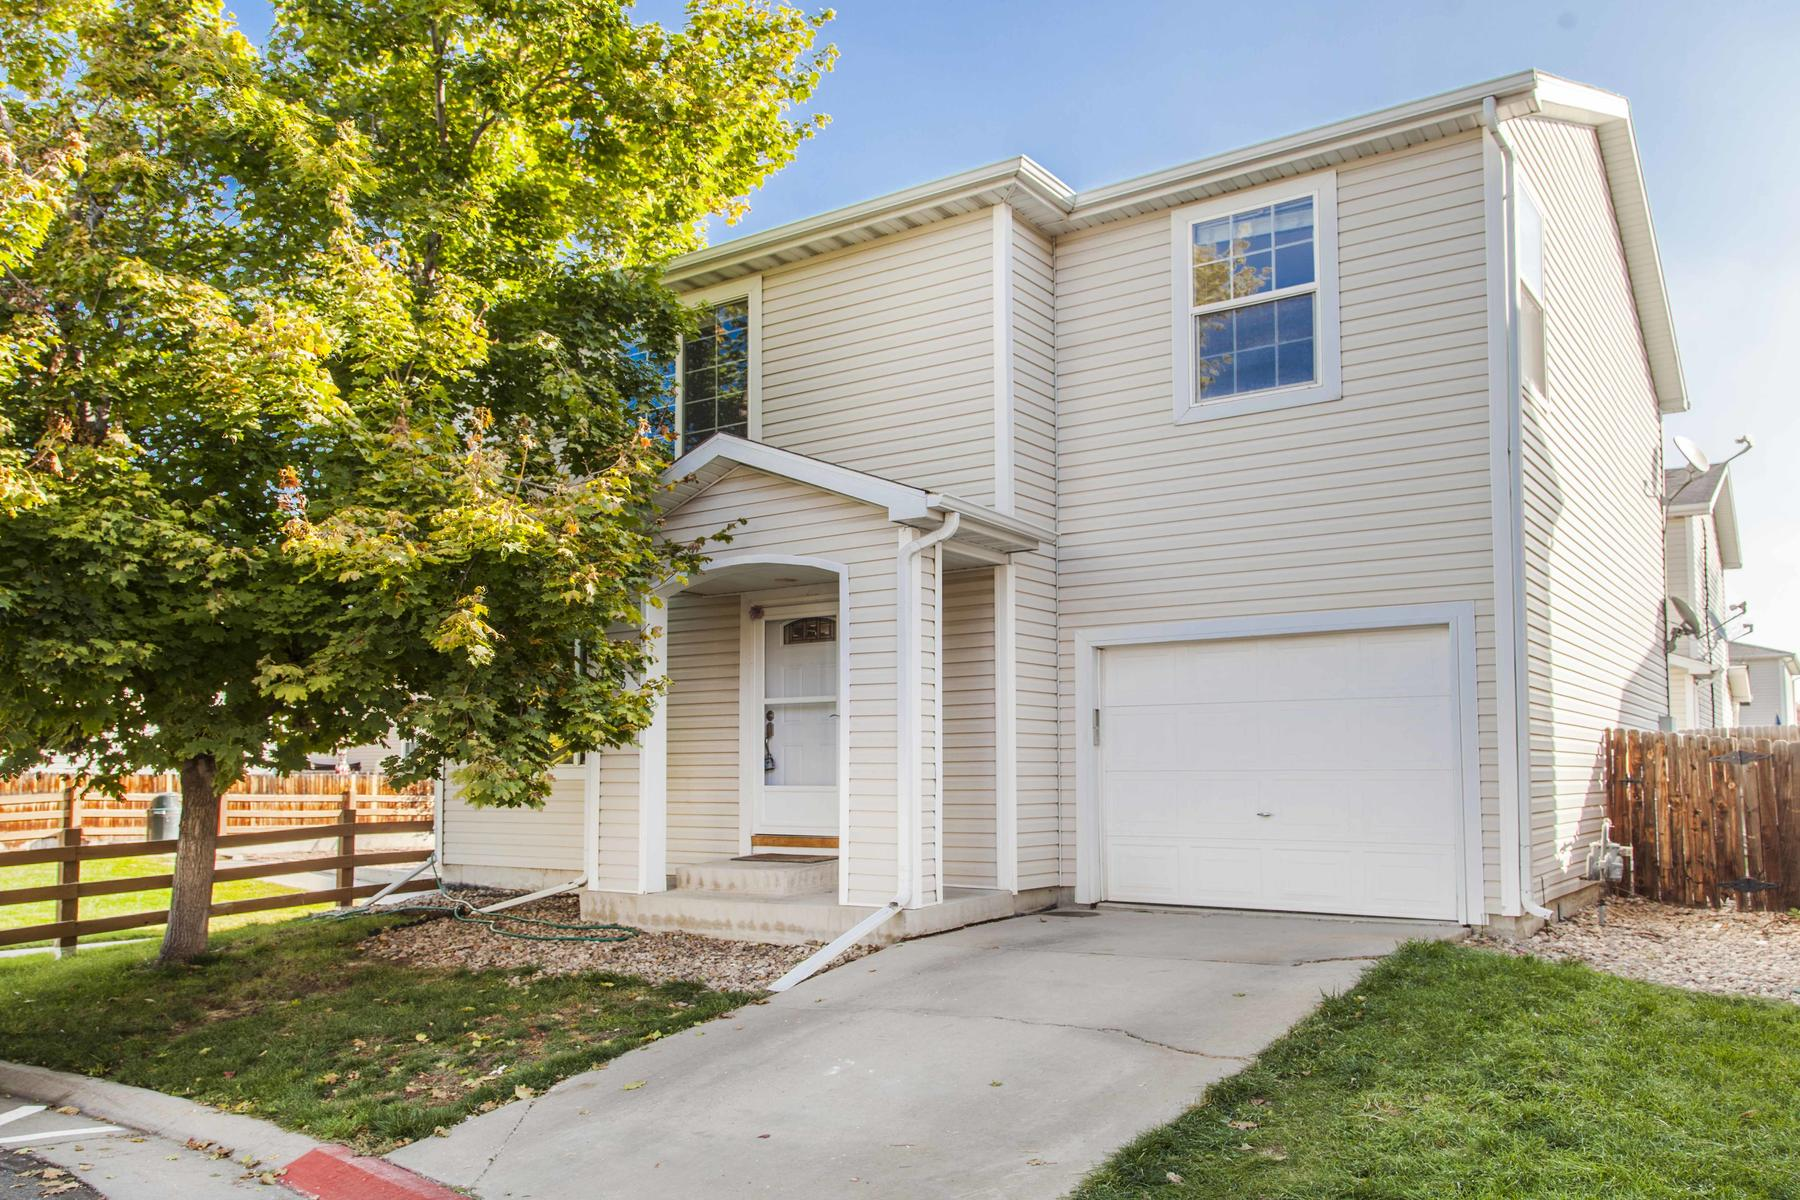 Single Family Home for Active at Perfect First Home Or Investment! 8876 Meade St Westminster, Colorado 80031 United States